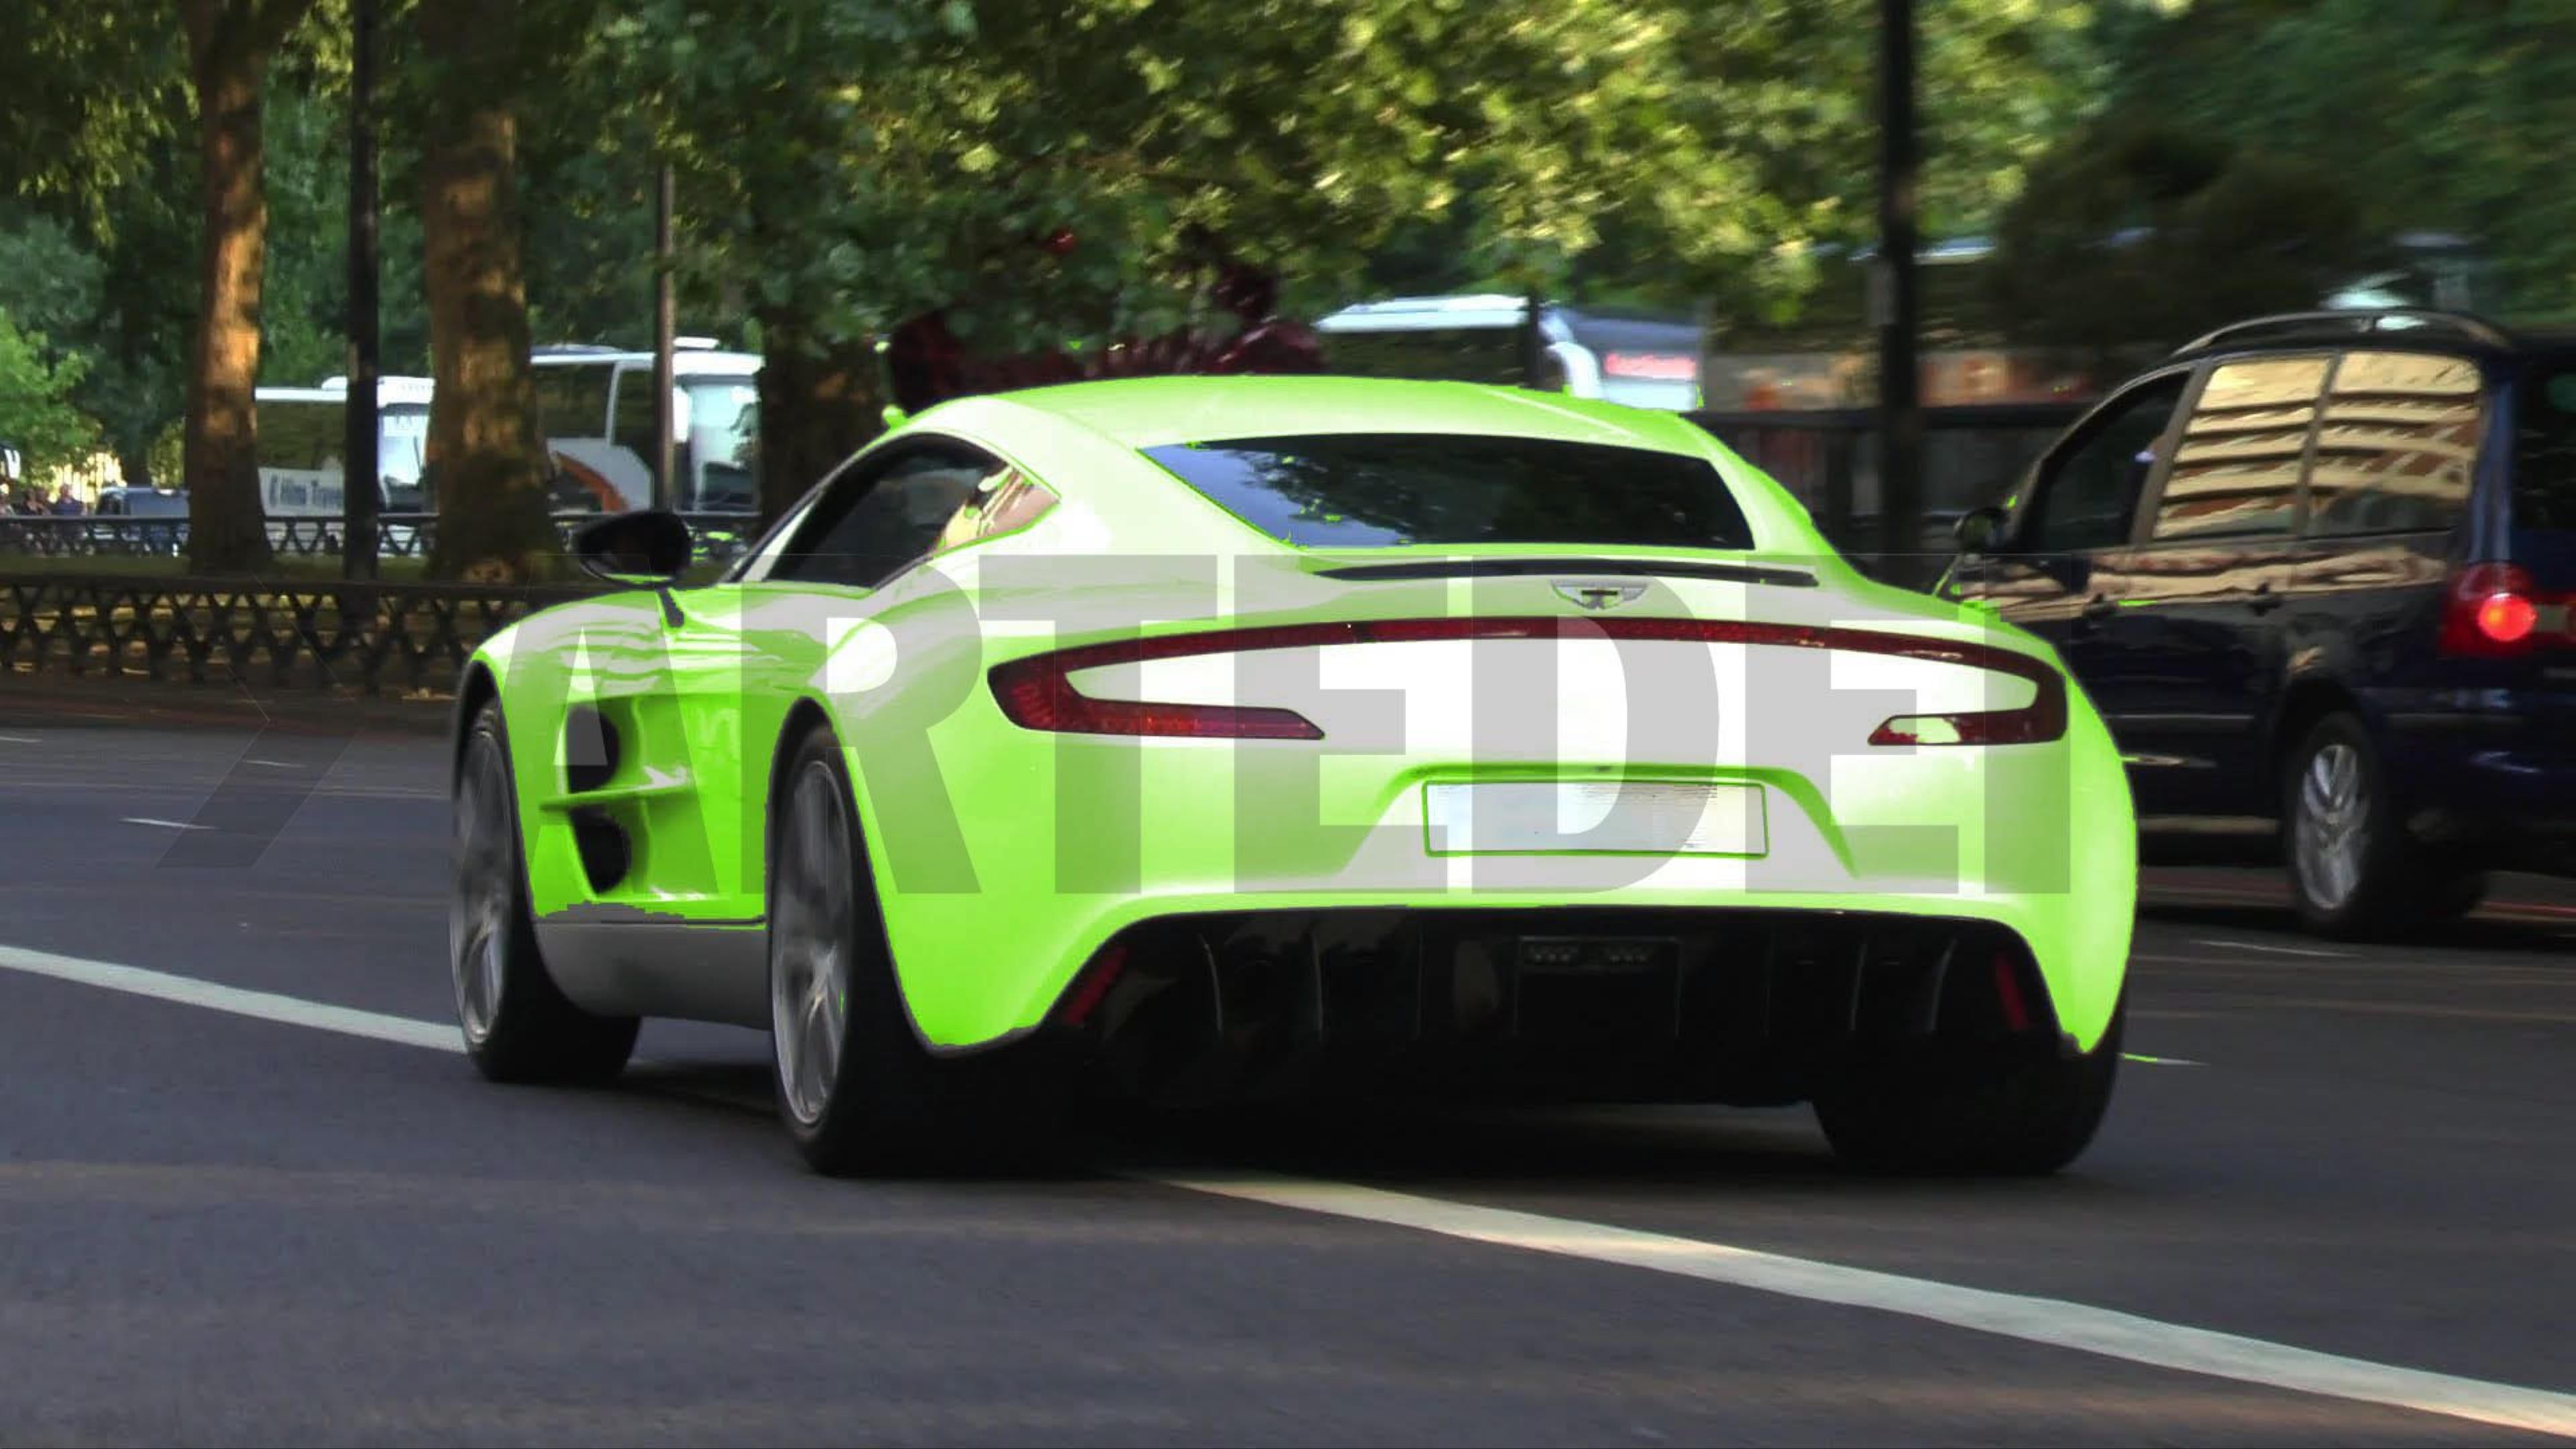 Product image of ASTON MARTIN, ASTON MARTIN One99, ASTONMARTIN